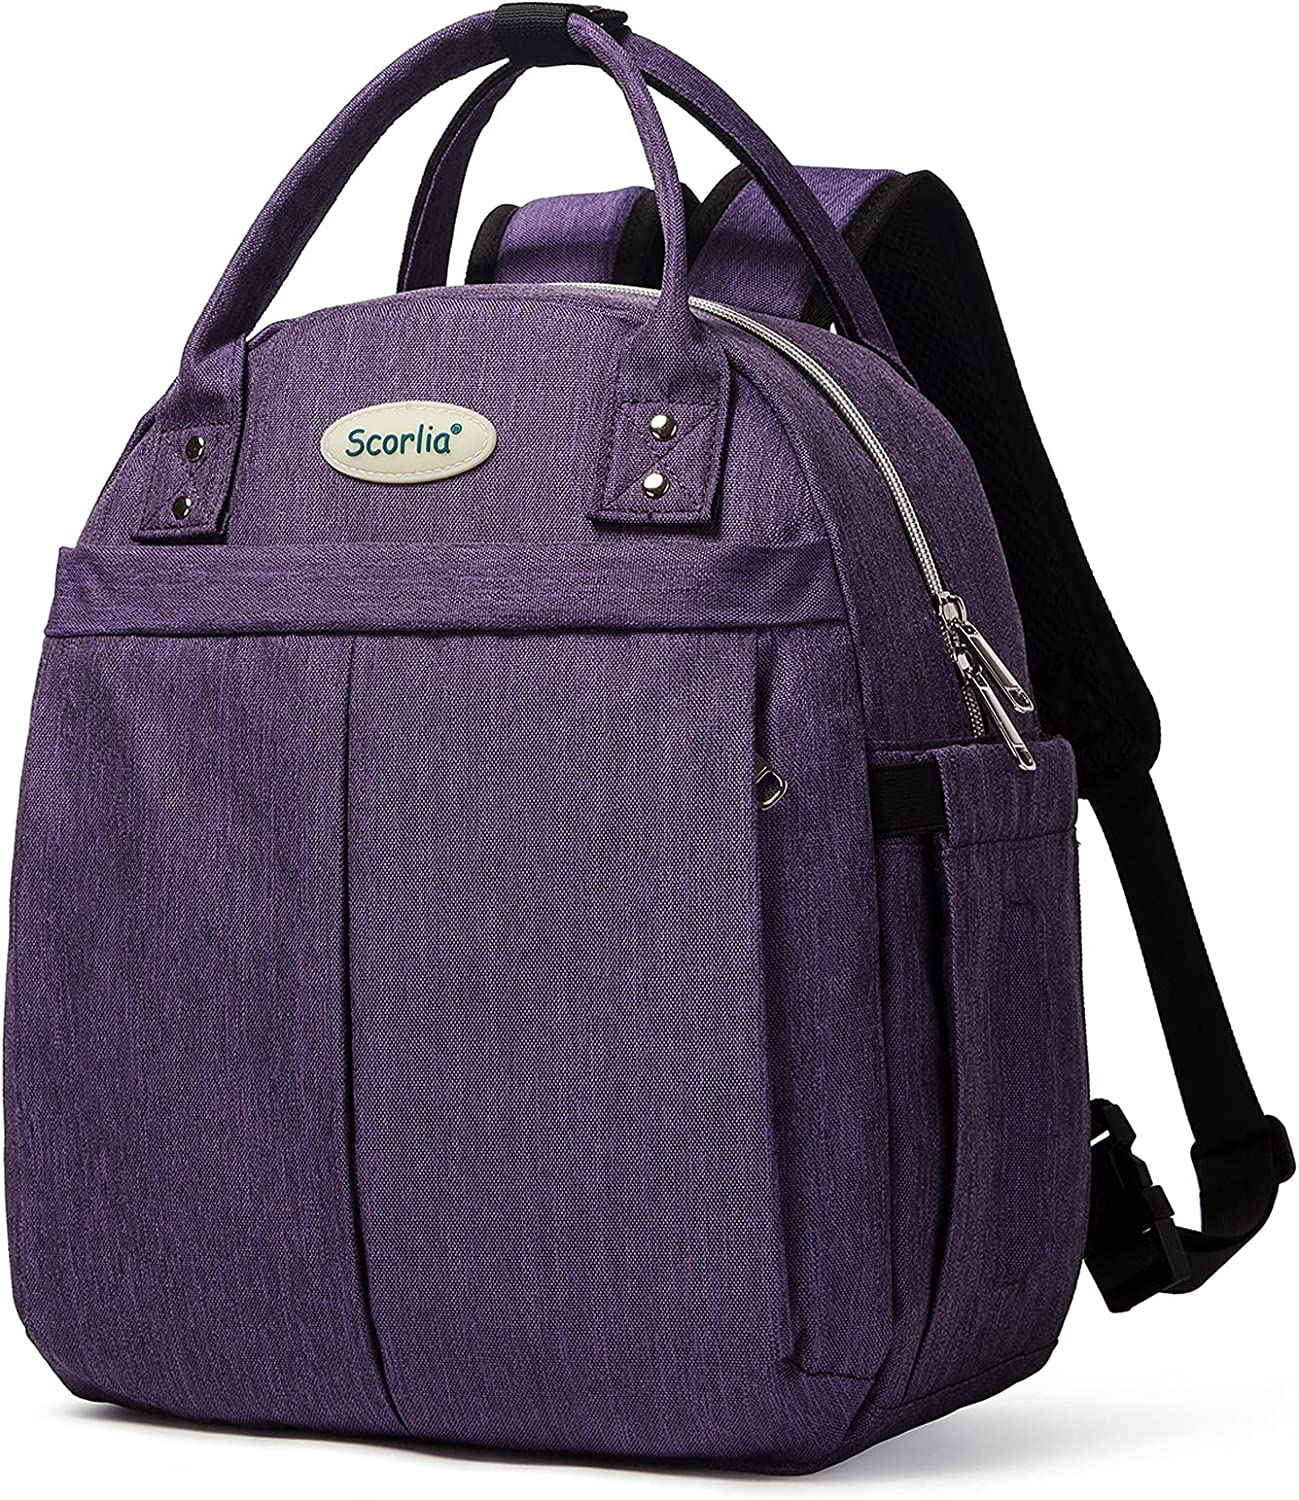 Insulated Lunch Bag Backpack for Women, SCORLIA with Side pocket, Tall Reusable lunch Box Container with Drinks Holder for Girl, Women, School, Office, Beach, Picnic, Purple